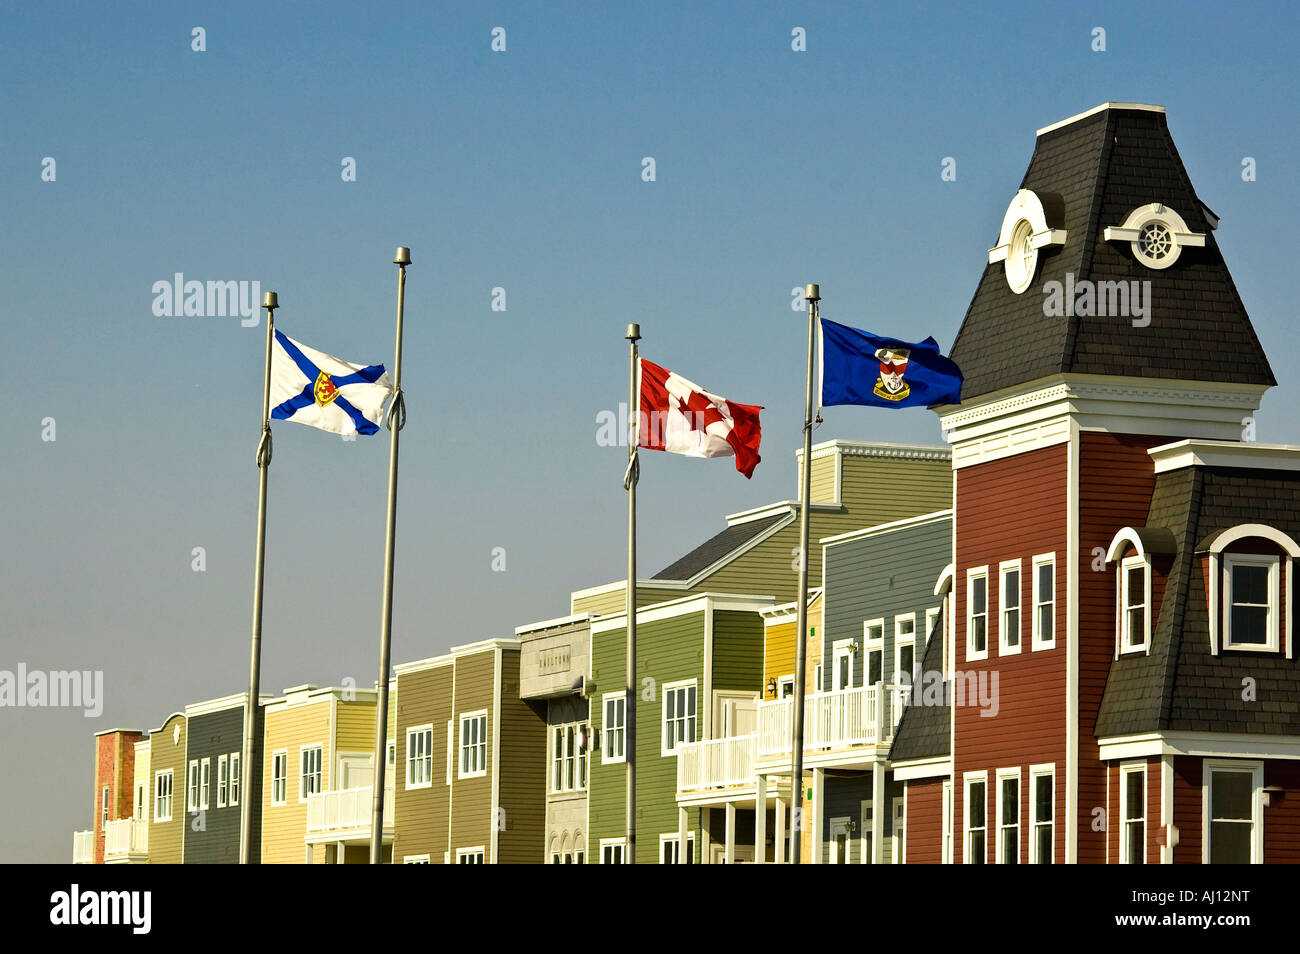 Flags fly in front of new condominium development in downtown Wolfville, Nova Scotia, Canada. Stock Photo